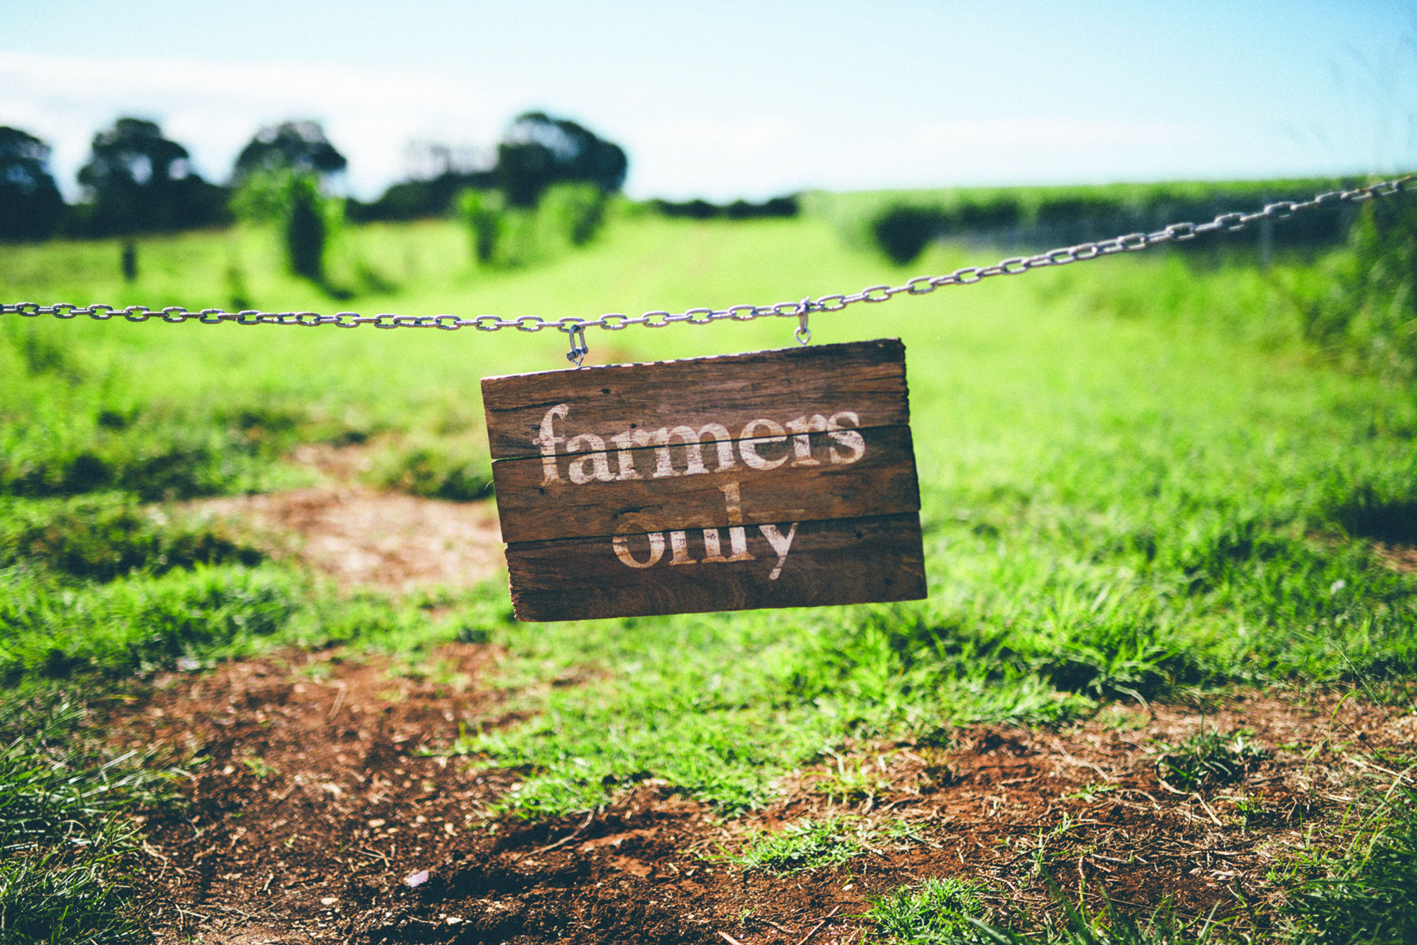 The Farm sub-lets land to other local farmers, providing greater diversity of produce.